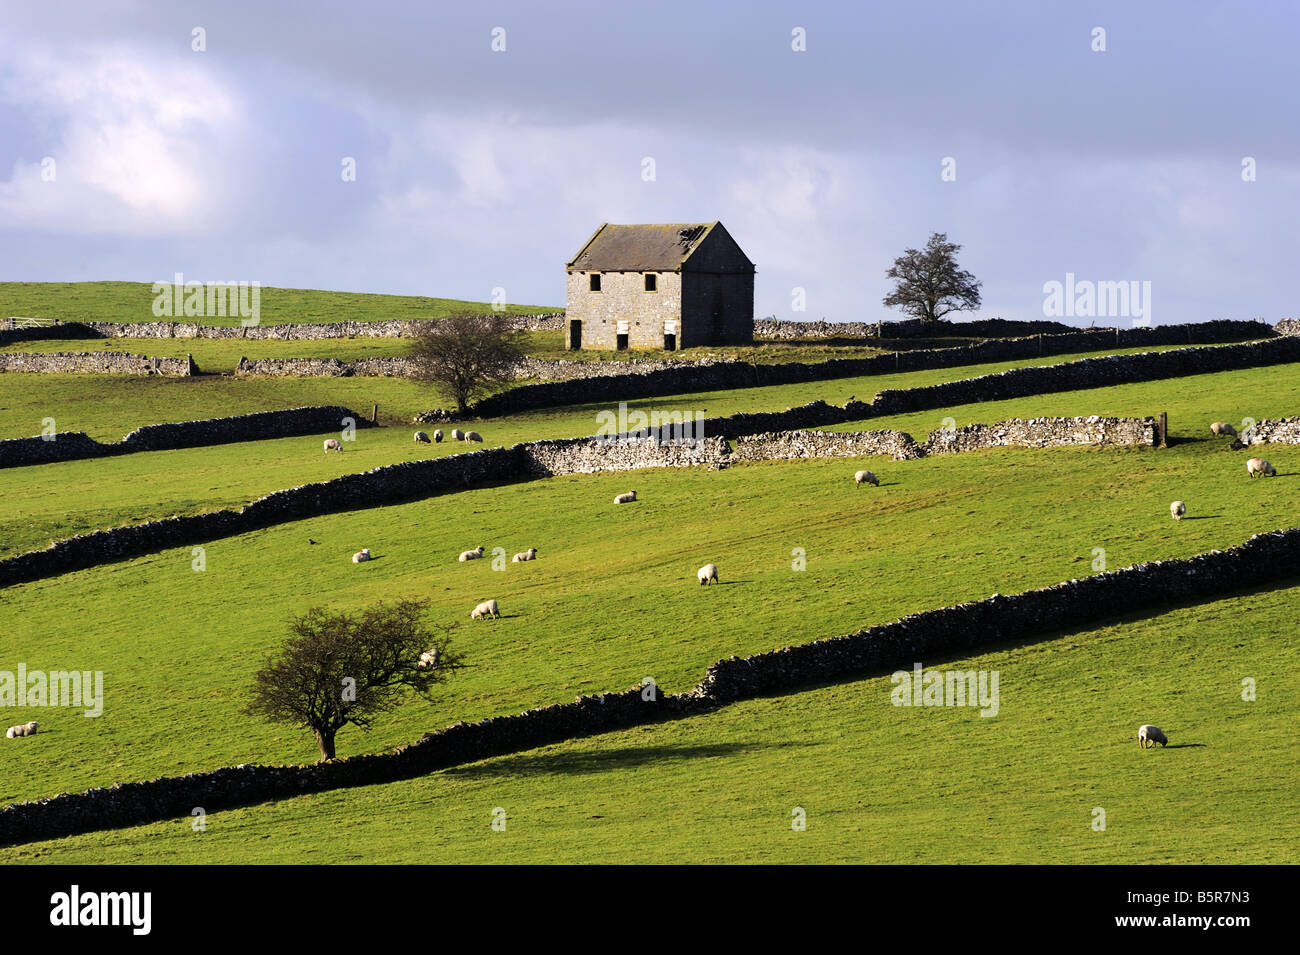 Dry stone walls and field barn, Wetton Low, Peak District National Park, England - Stock Image